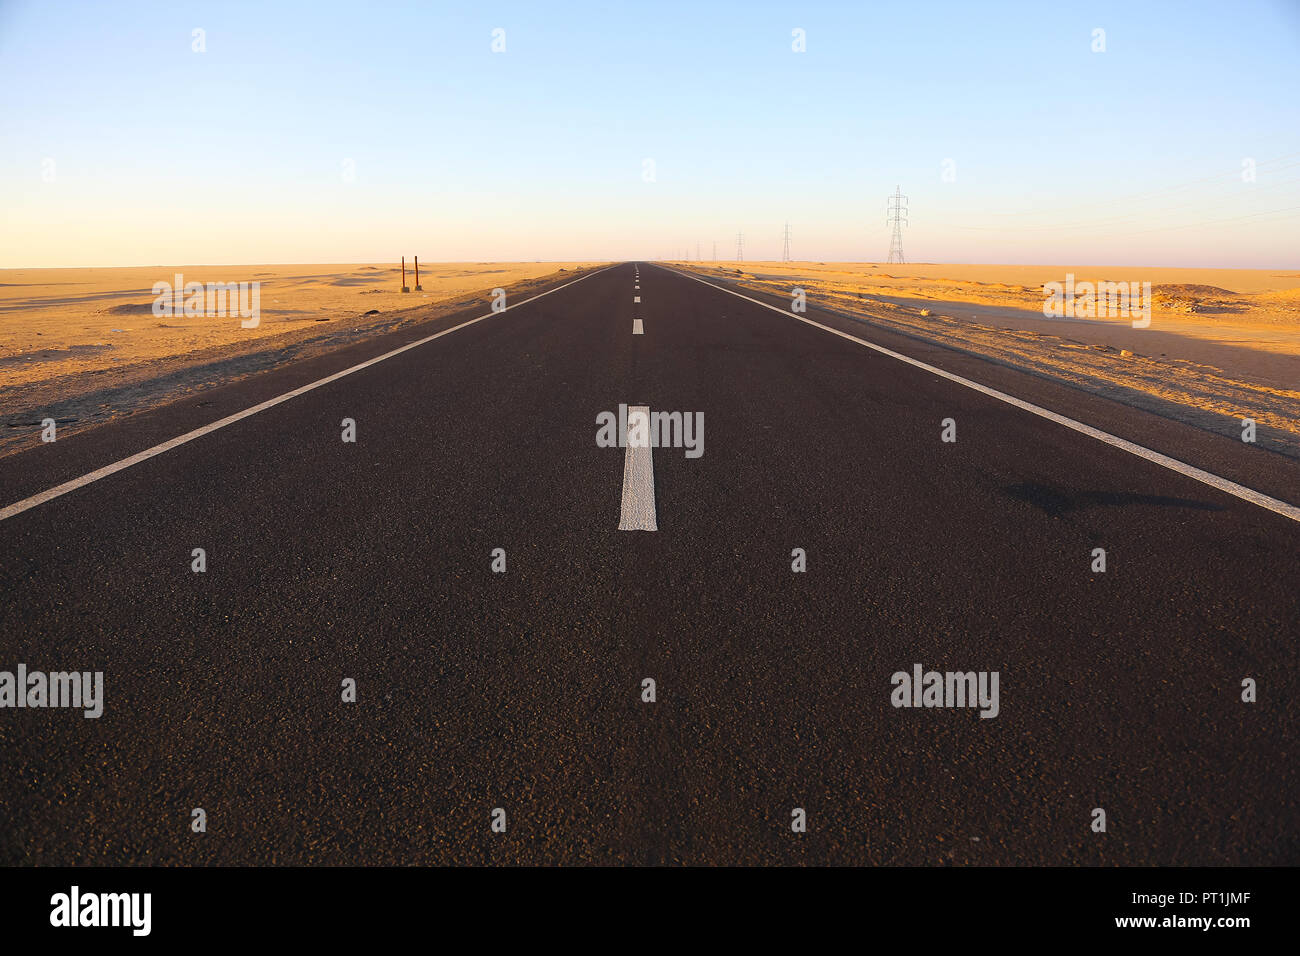 A view from the middle of the deserted road in the Sahara Desert, Egypt, Africa - Stock Image